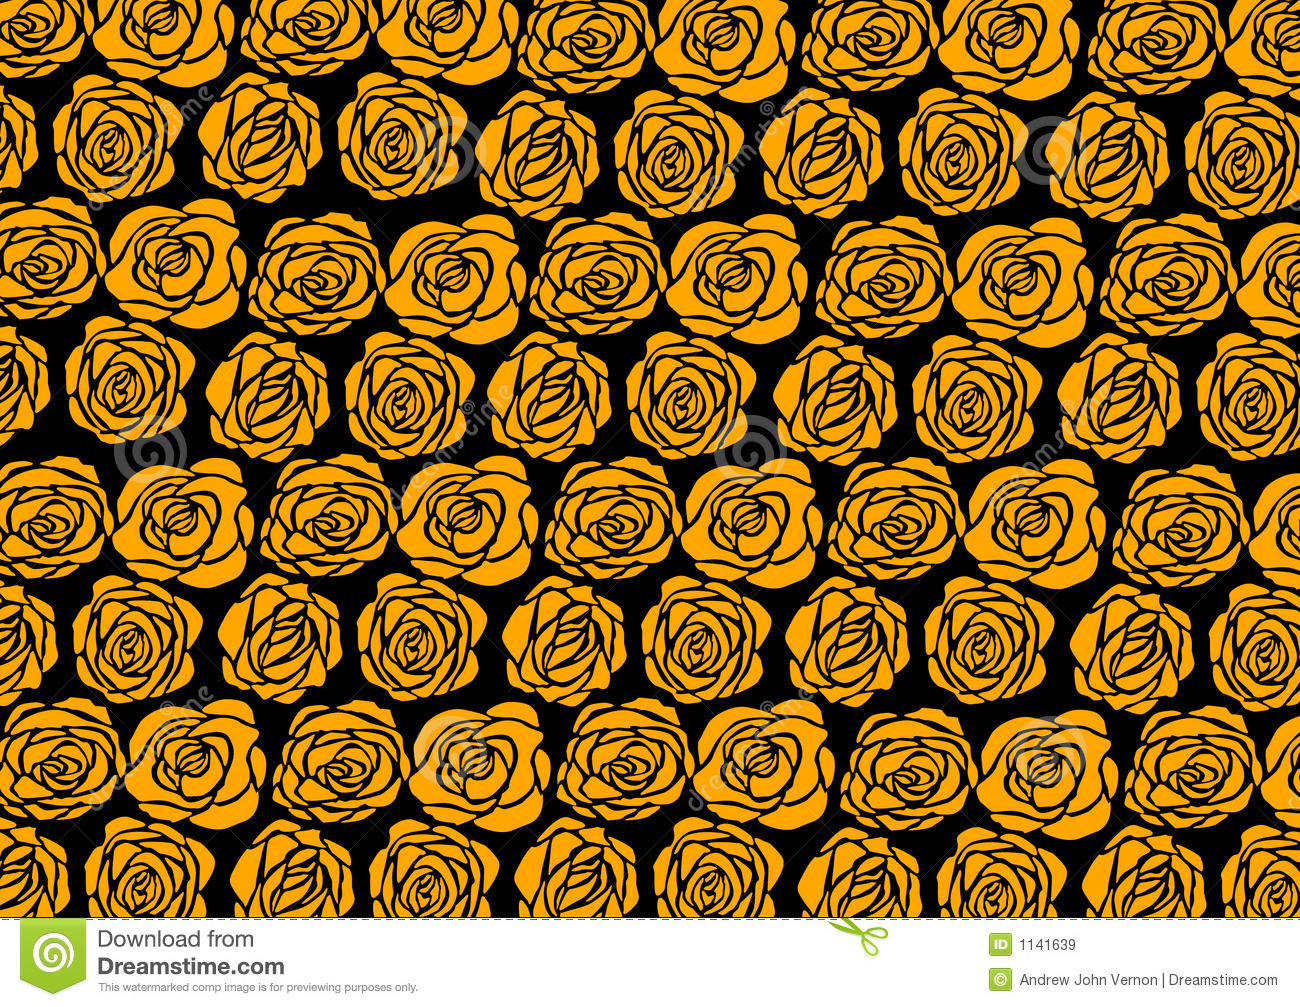 Rose Wallpaper Stock Vector Illustration Of Golden Funk